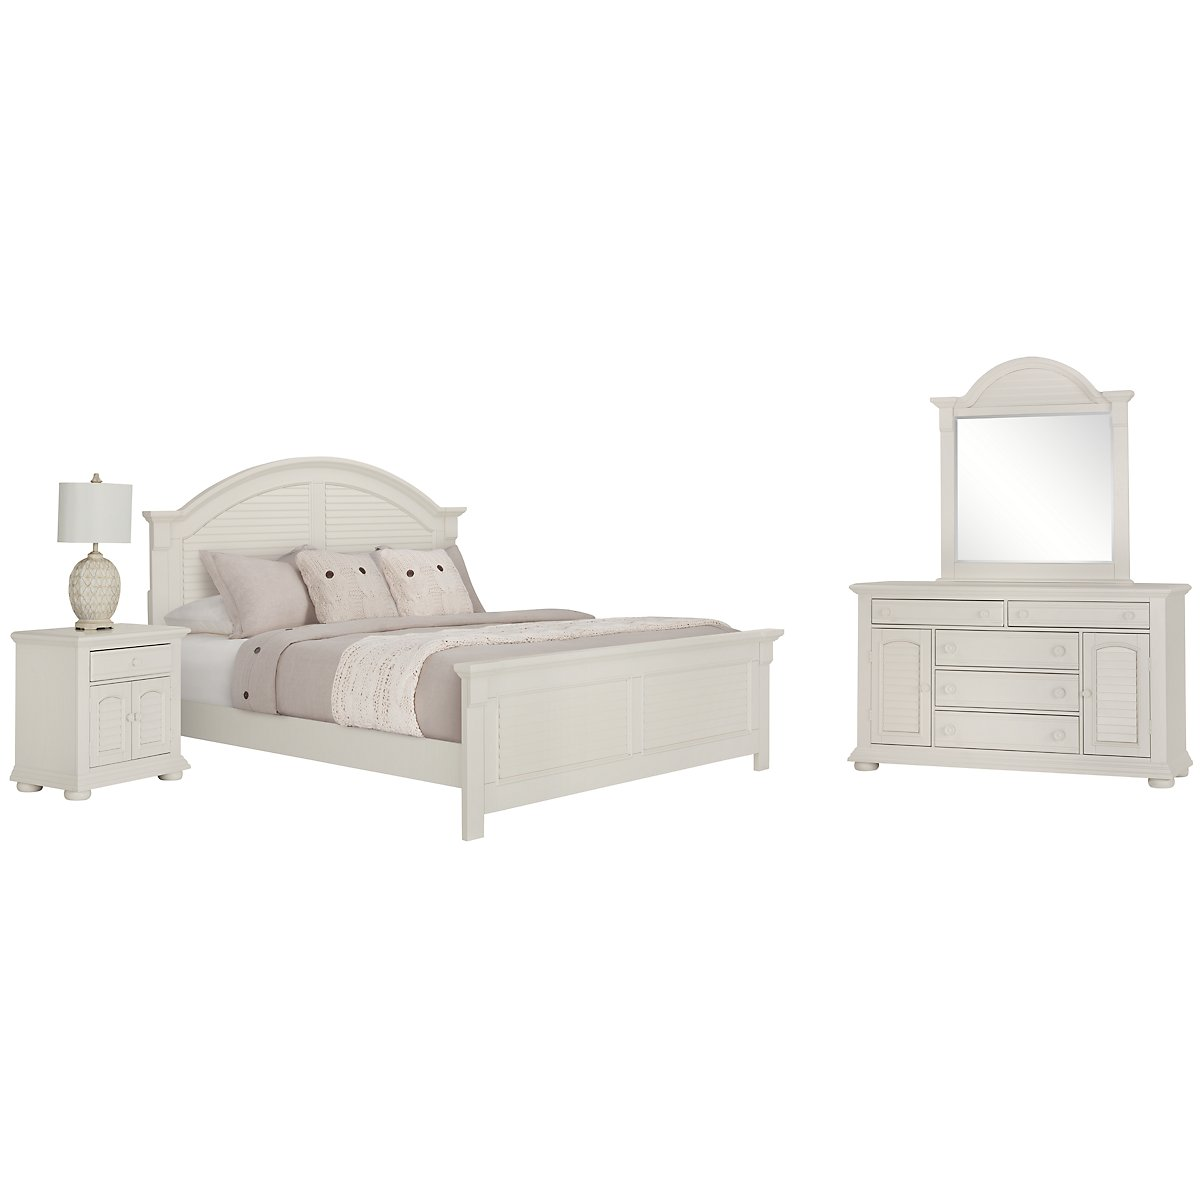 City Furniture: Quinn White Large Dresser & Mirror